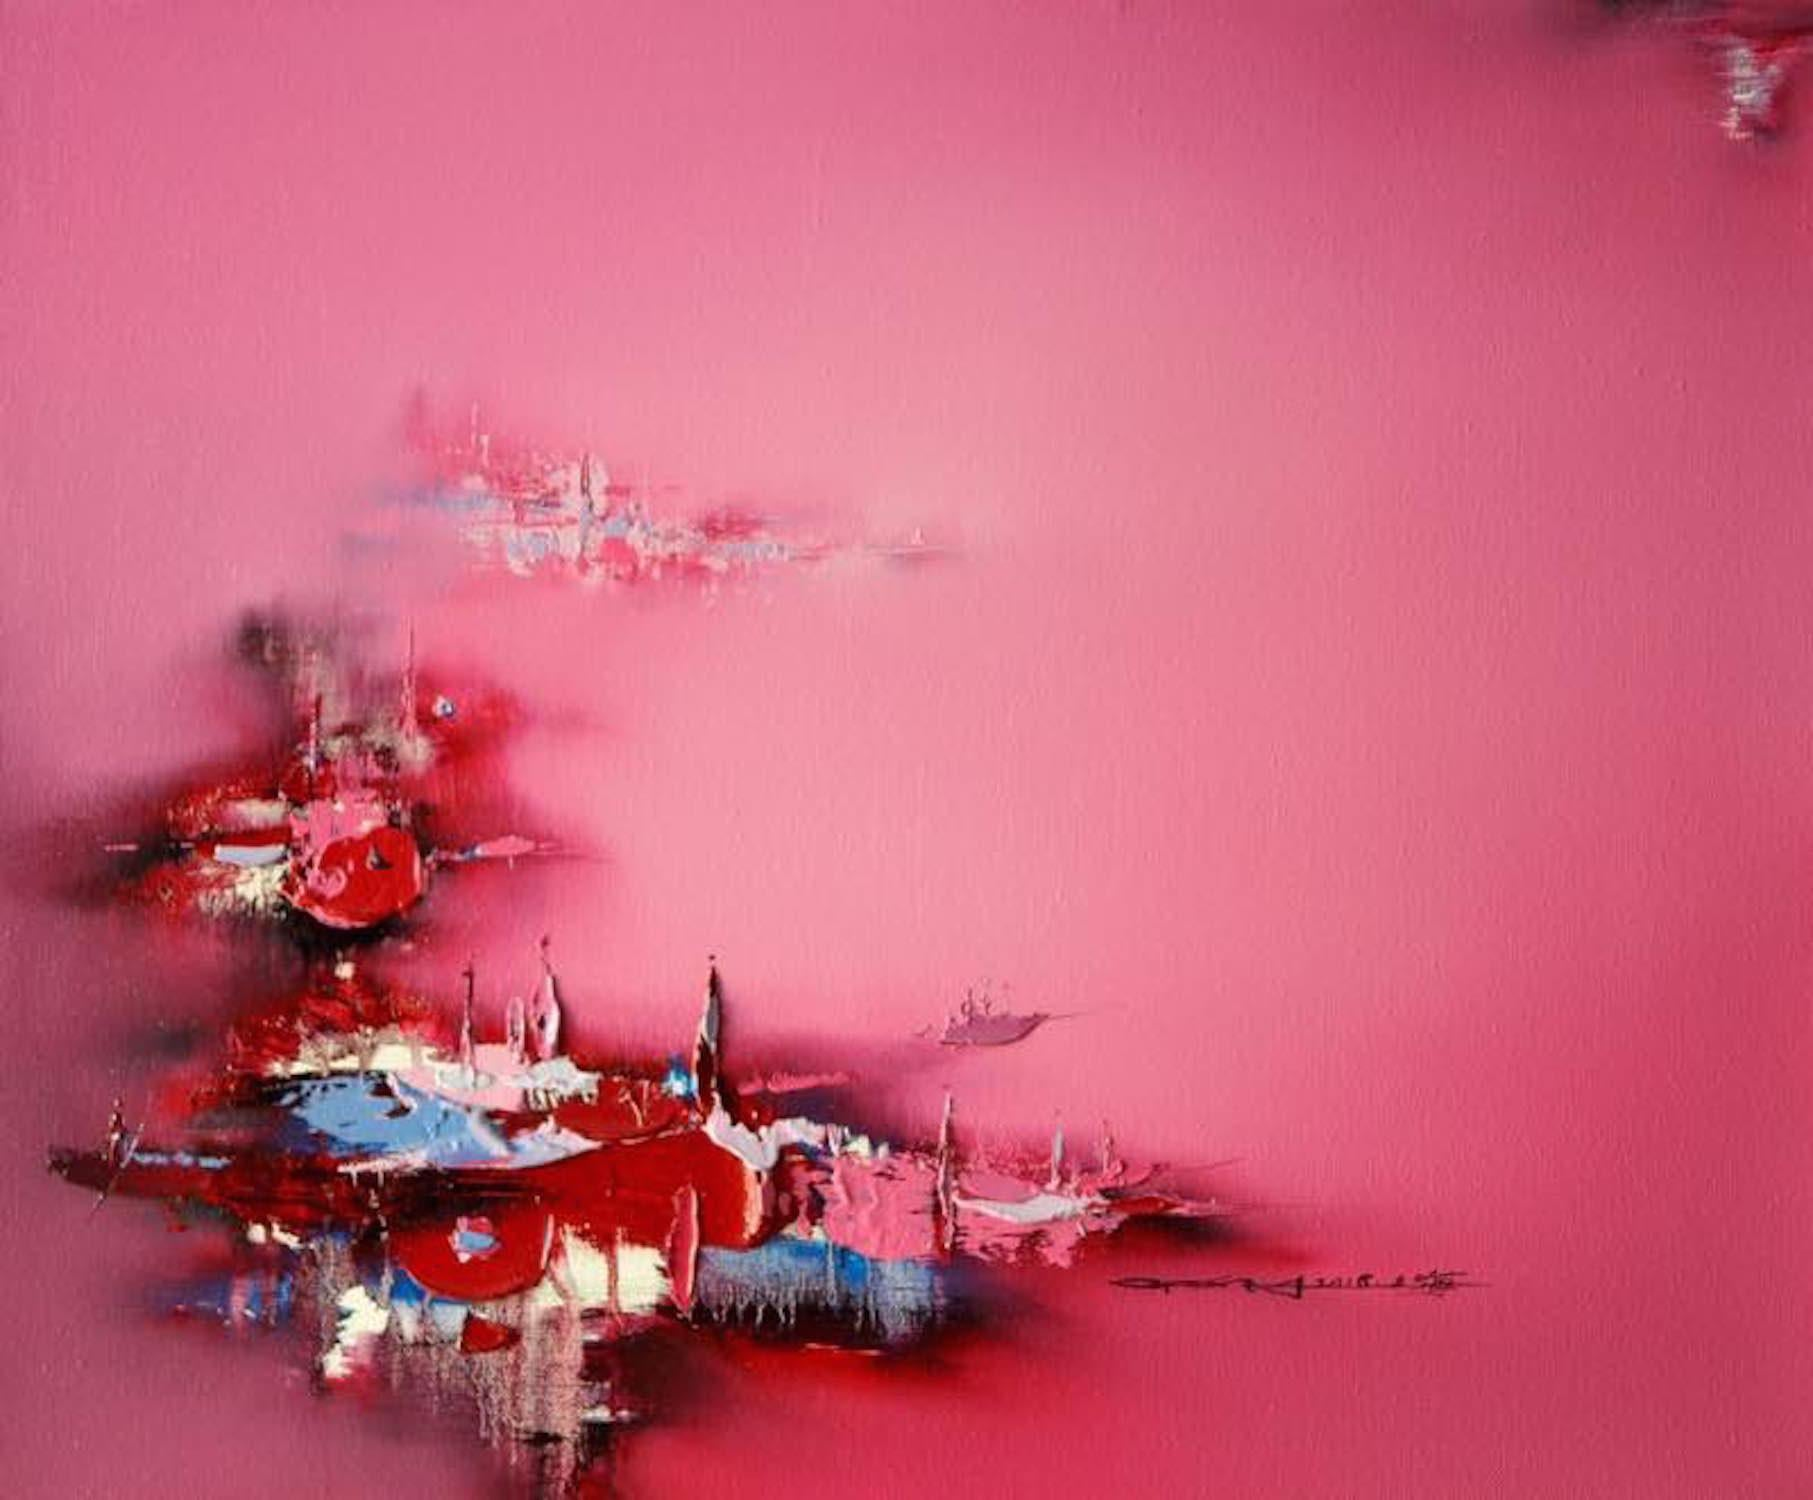 """""""The Lantern Day"""", Red pinkish. serenity and peaceful"""